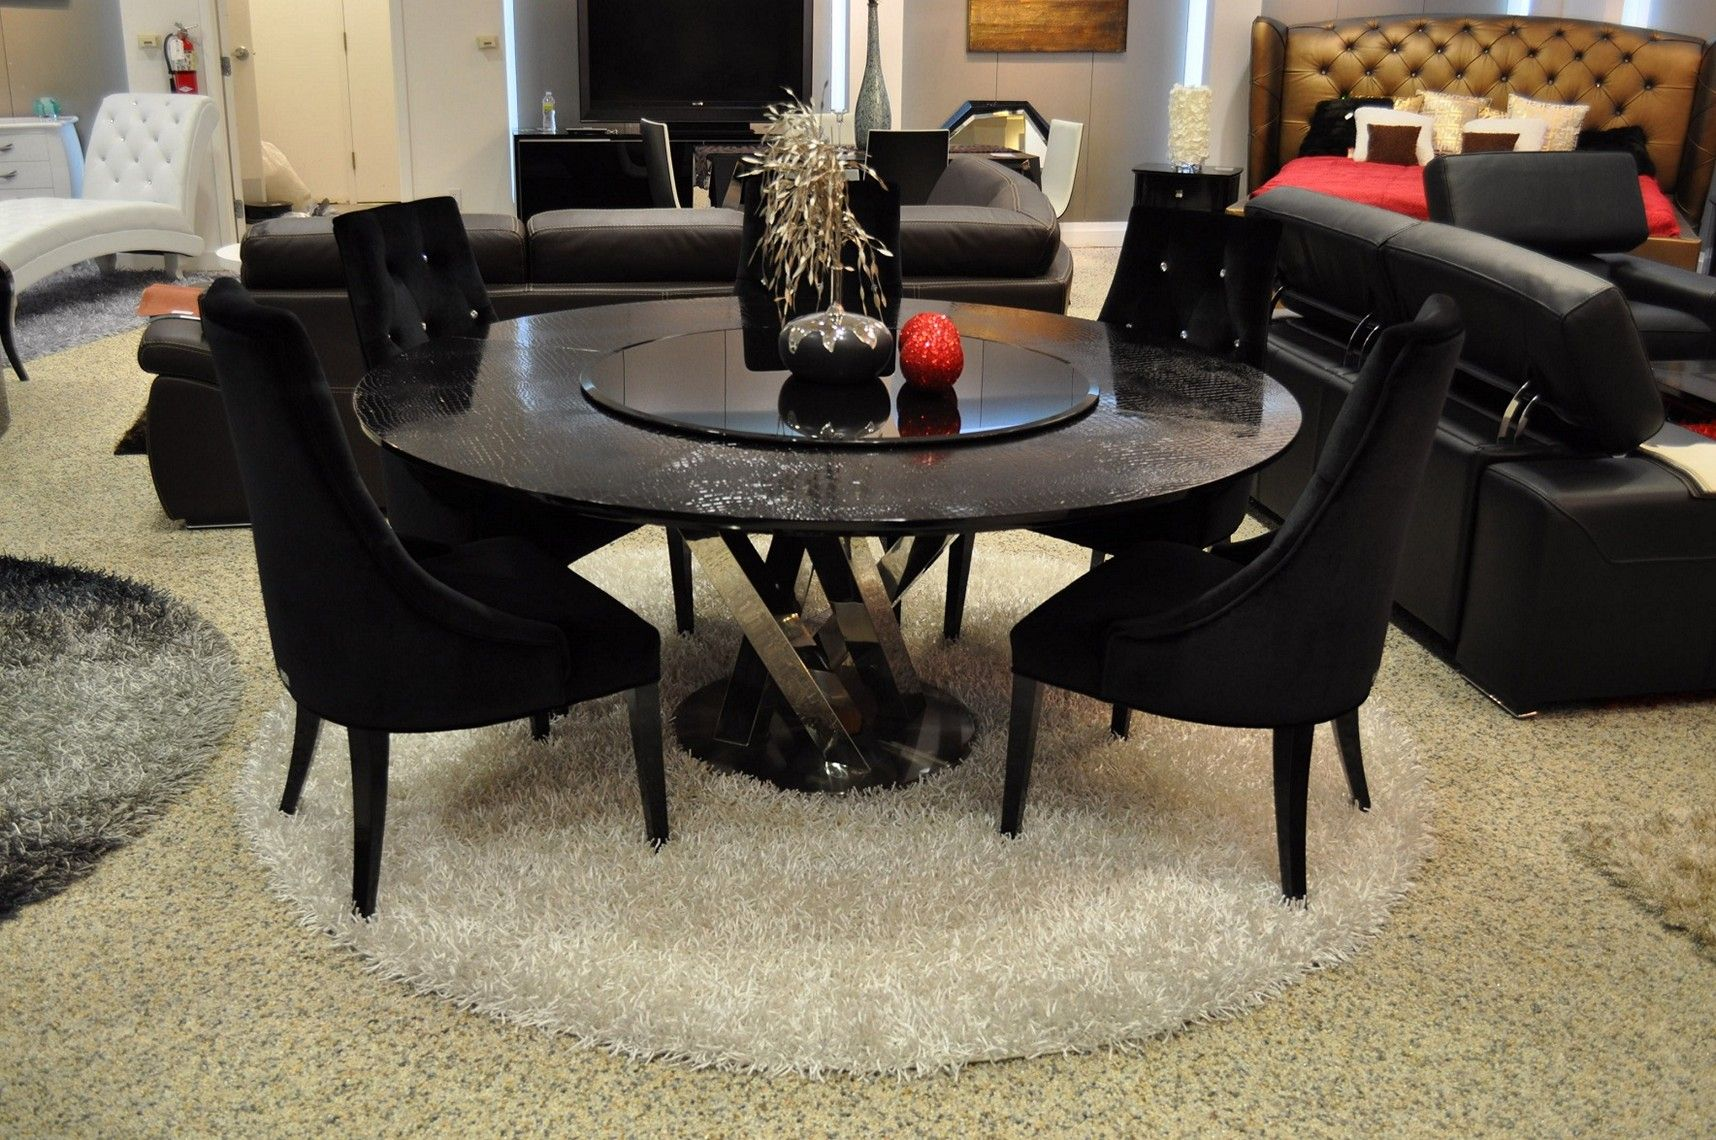 72 Inch Round Dining Table Black Modern Dining Room Set Round Marble Dining Table Round Dining Table Sets